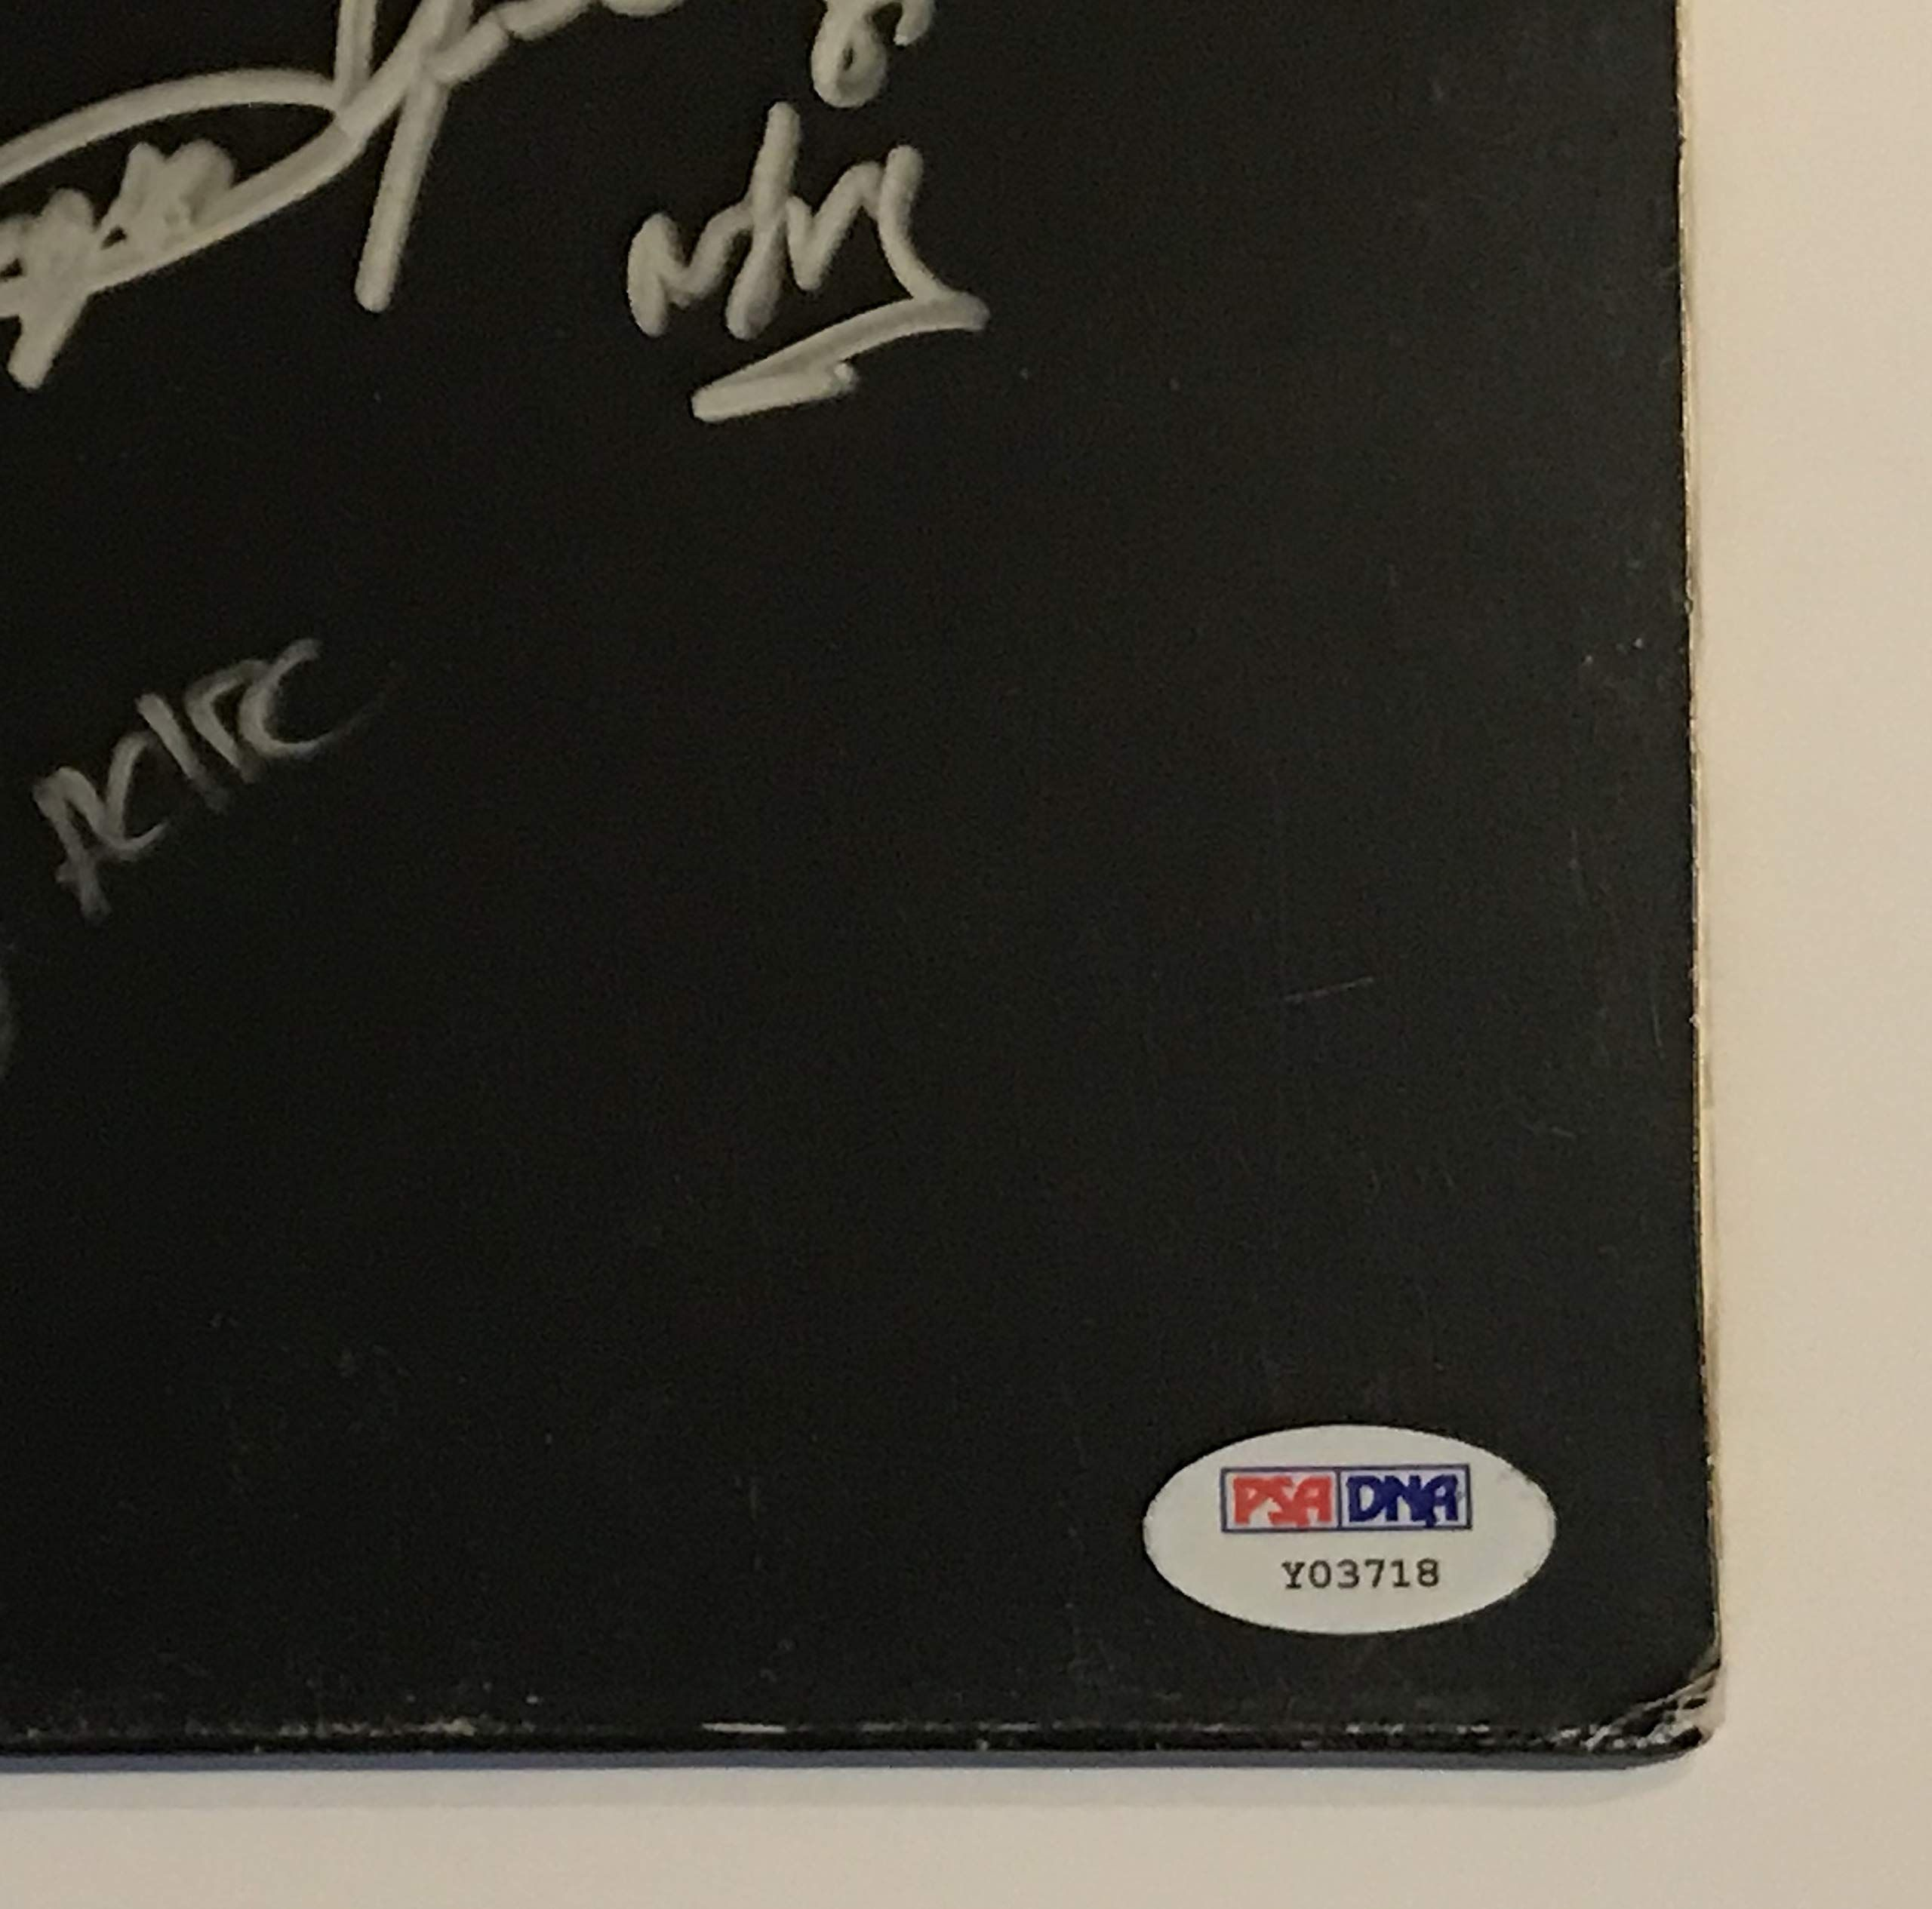 Ac Dc Signed Back In Black Album Malcolm Angus Young Brian Cliff